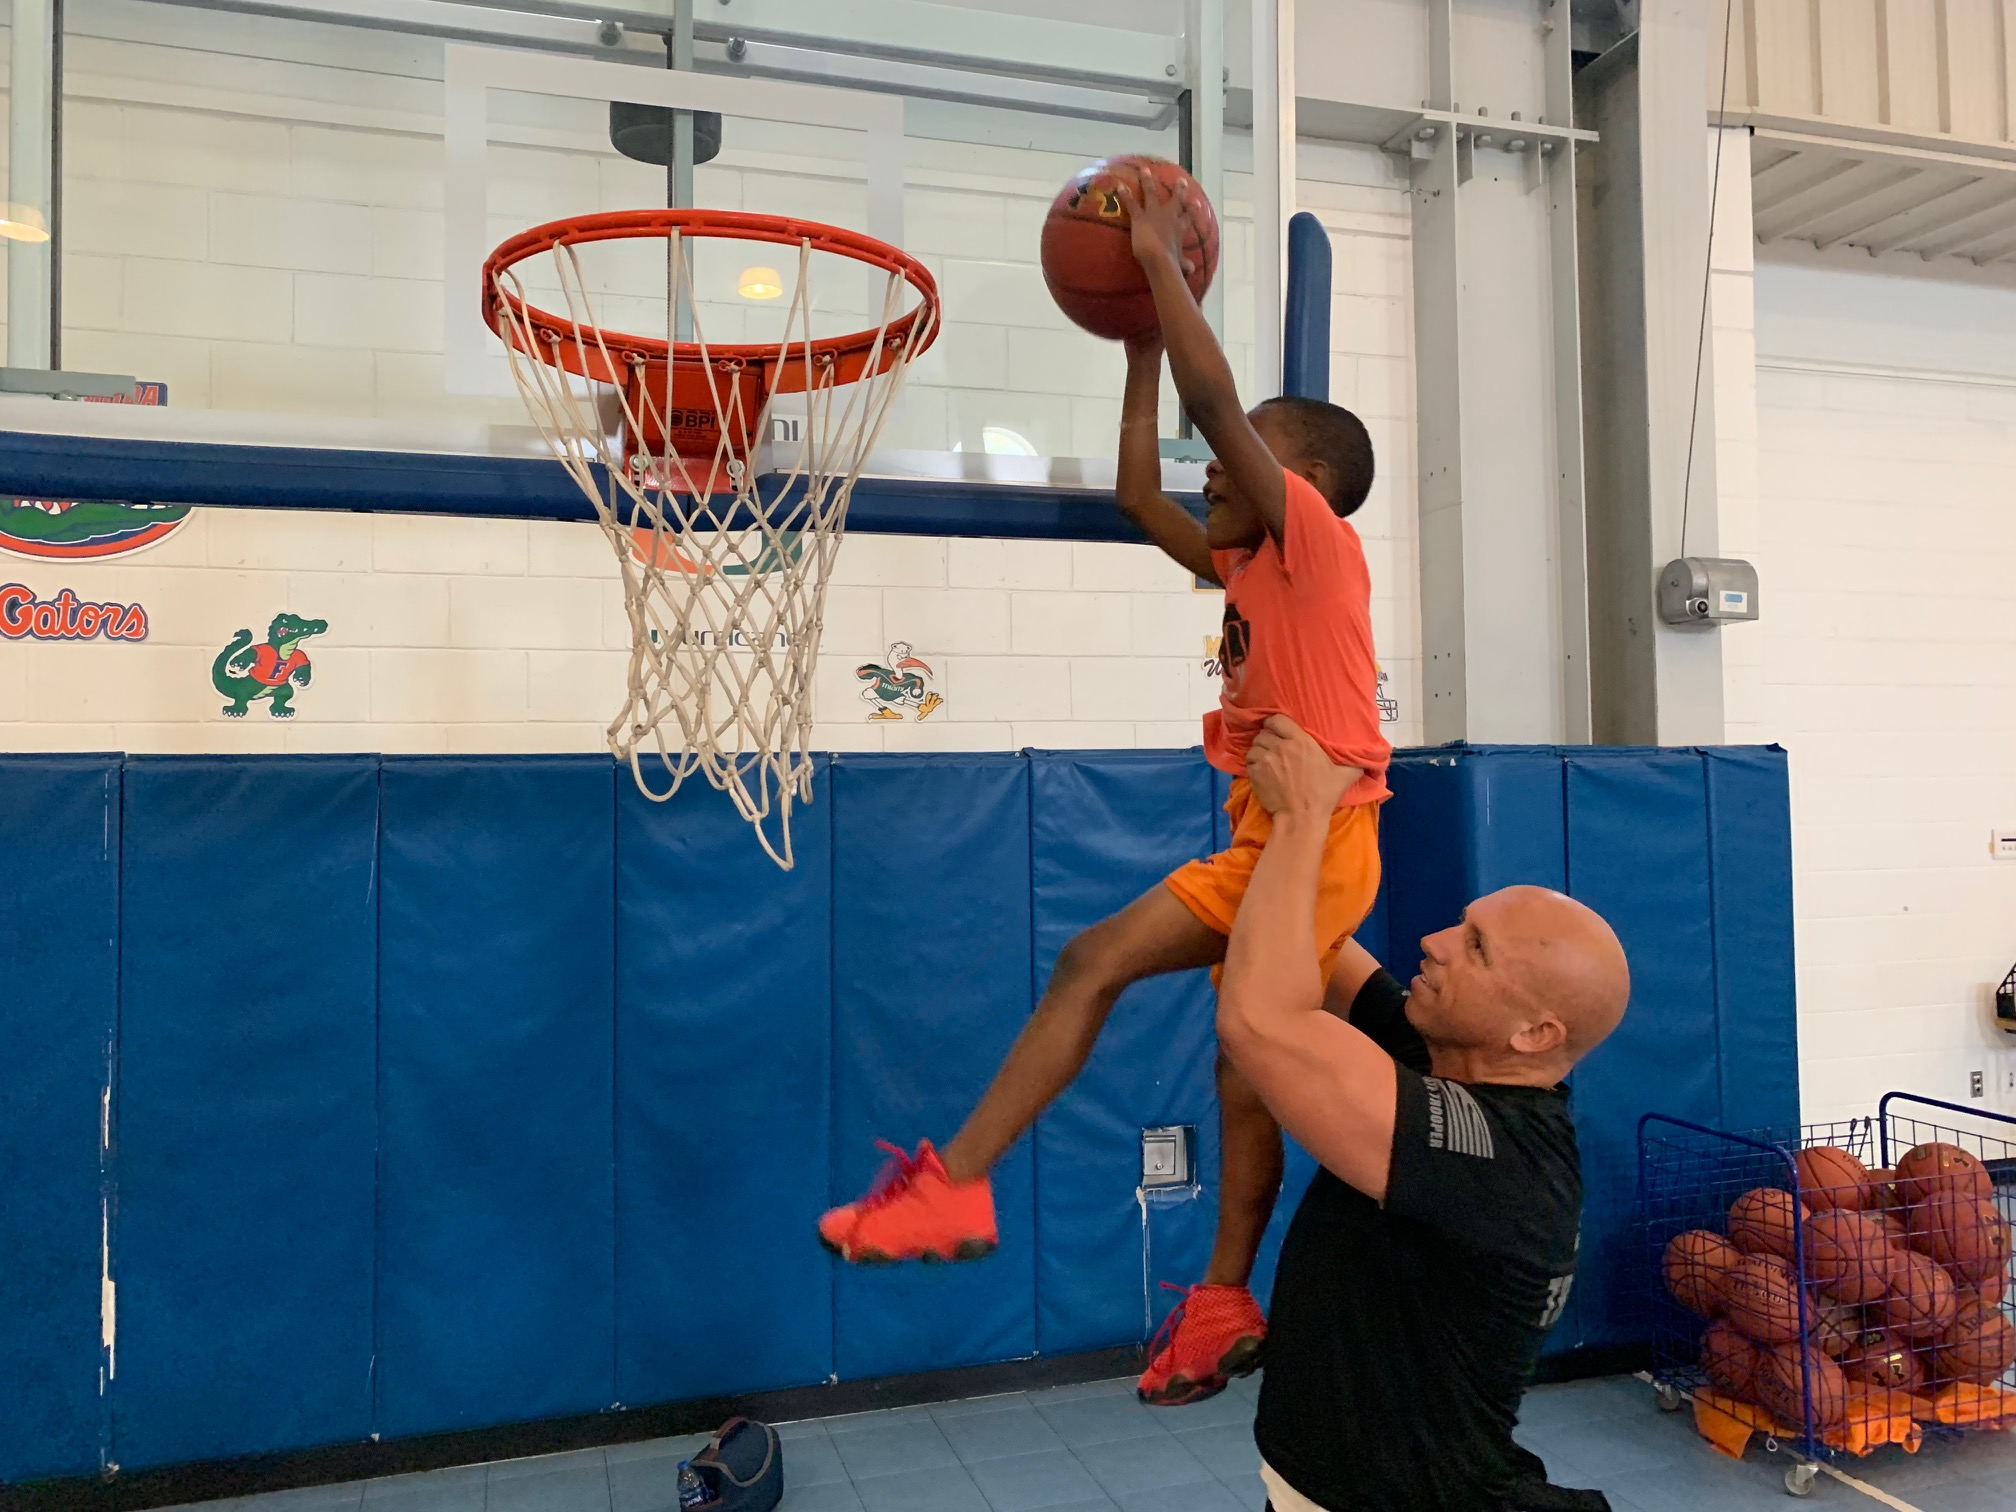 Lt. Greg Bueno helping a member of the Boys & Girls Clubs of Collier County dunk a basketball